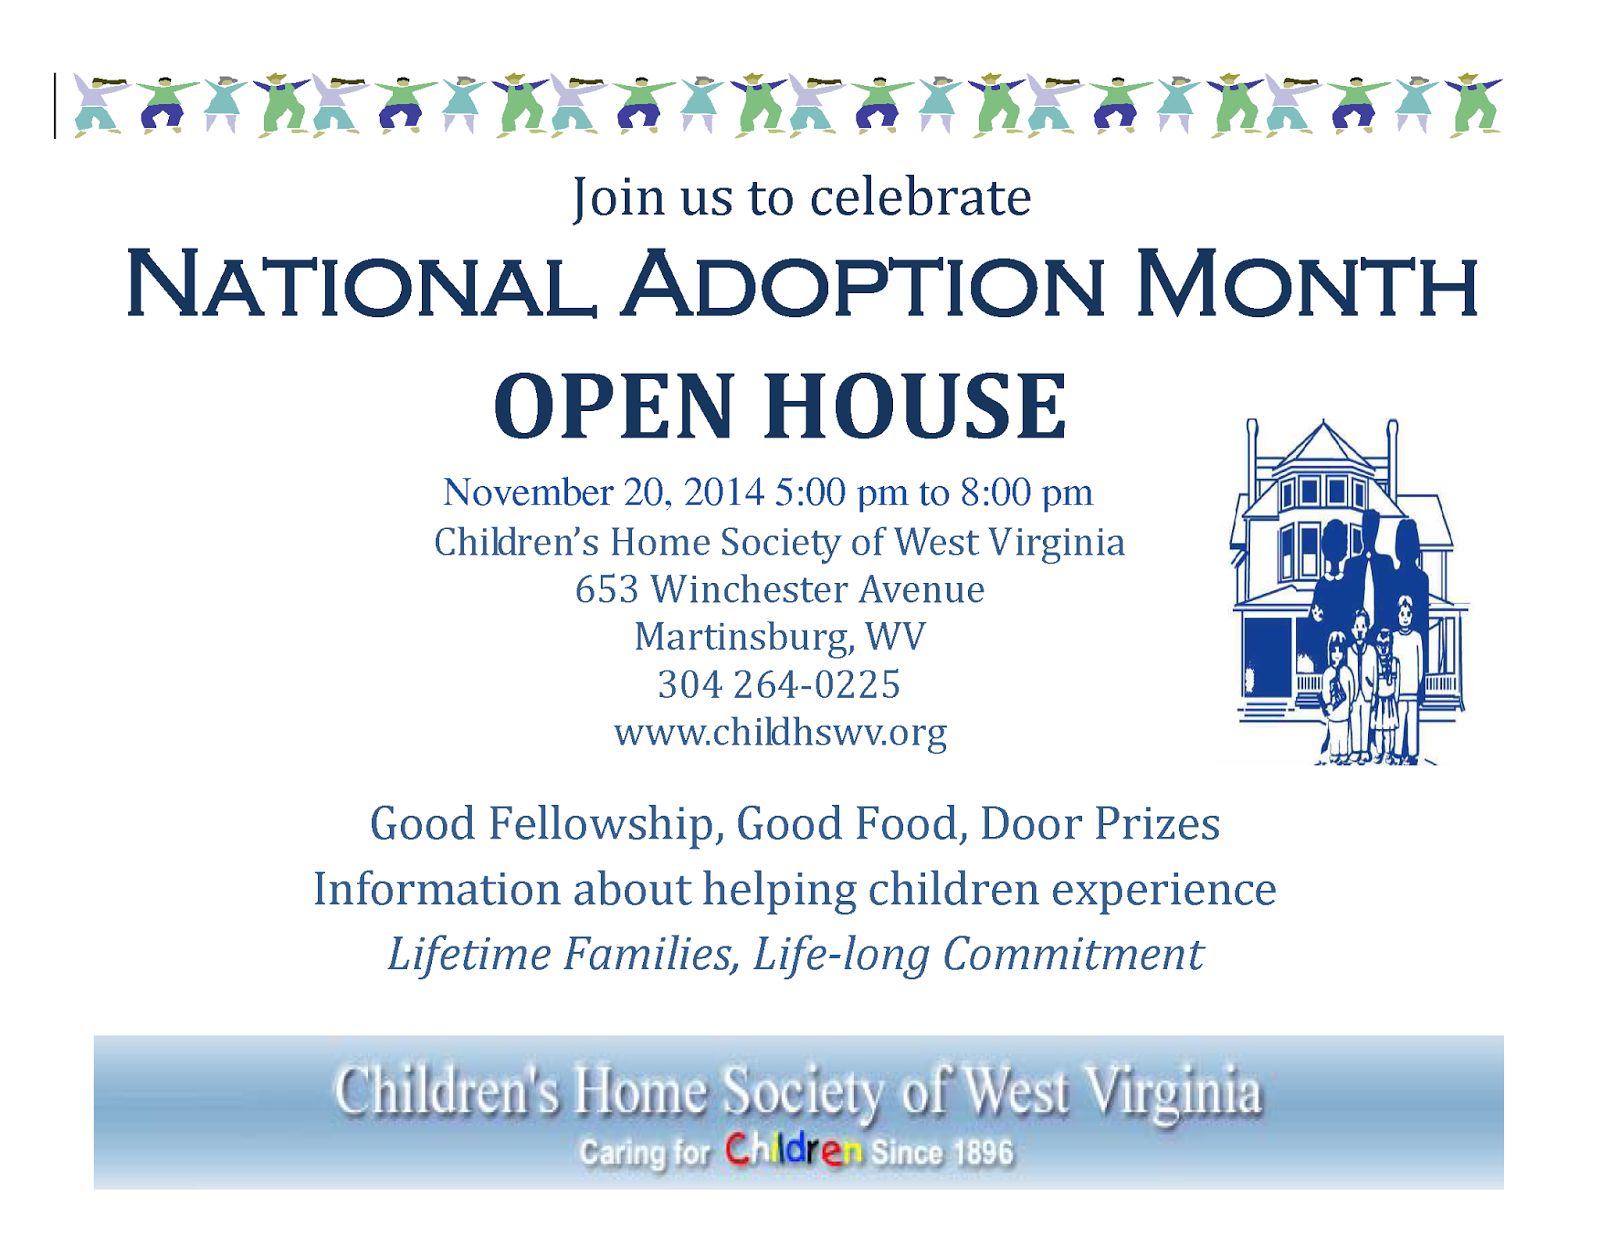 Wv colored childrens home - Join Us On November 20 2014 From 5 00 Pm To 8 00 Pm For The Children S Home Society Of West Virginia Adoption Open House Learn About Adoption Local